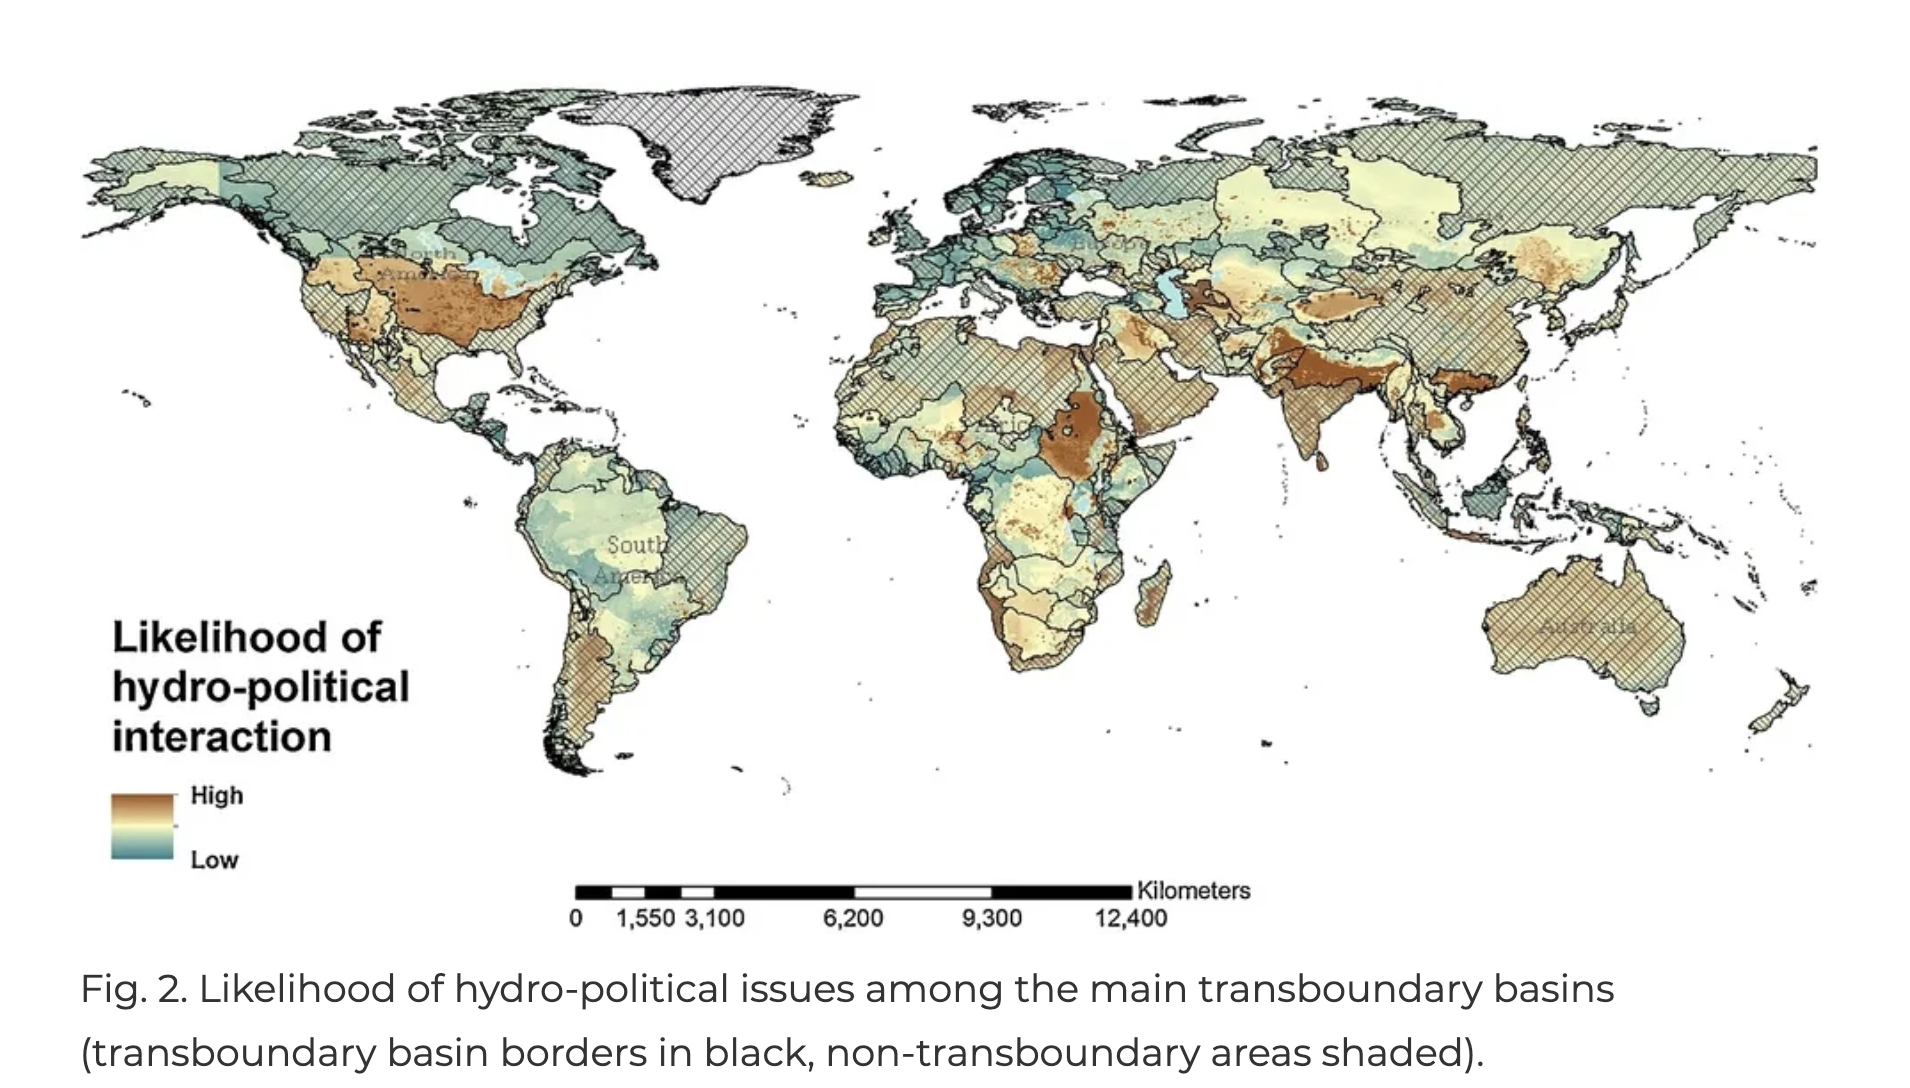 Map of Likelihood of hydro-political interactions